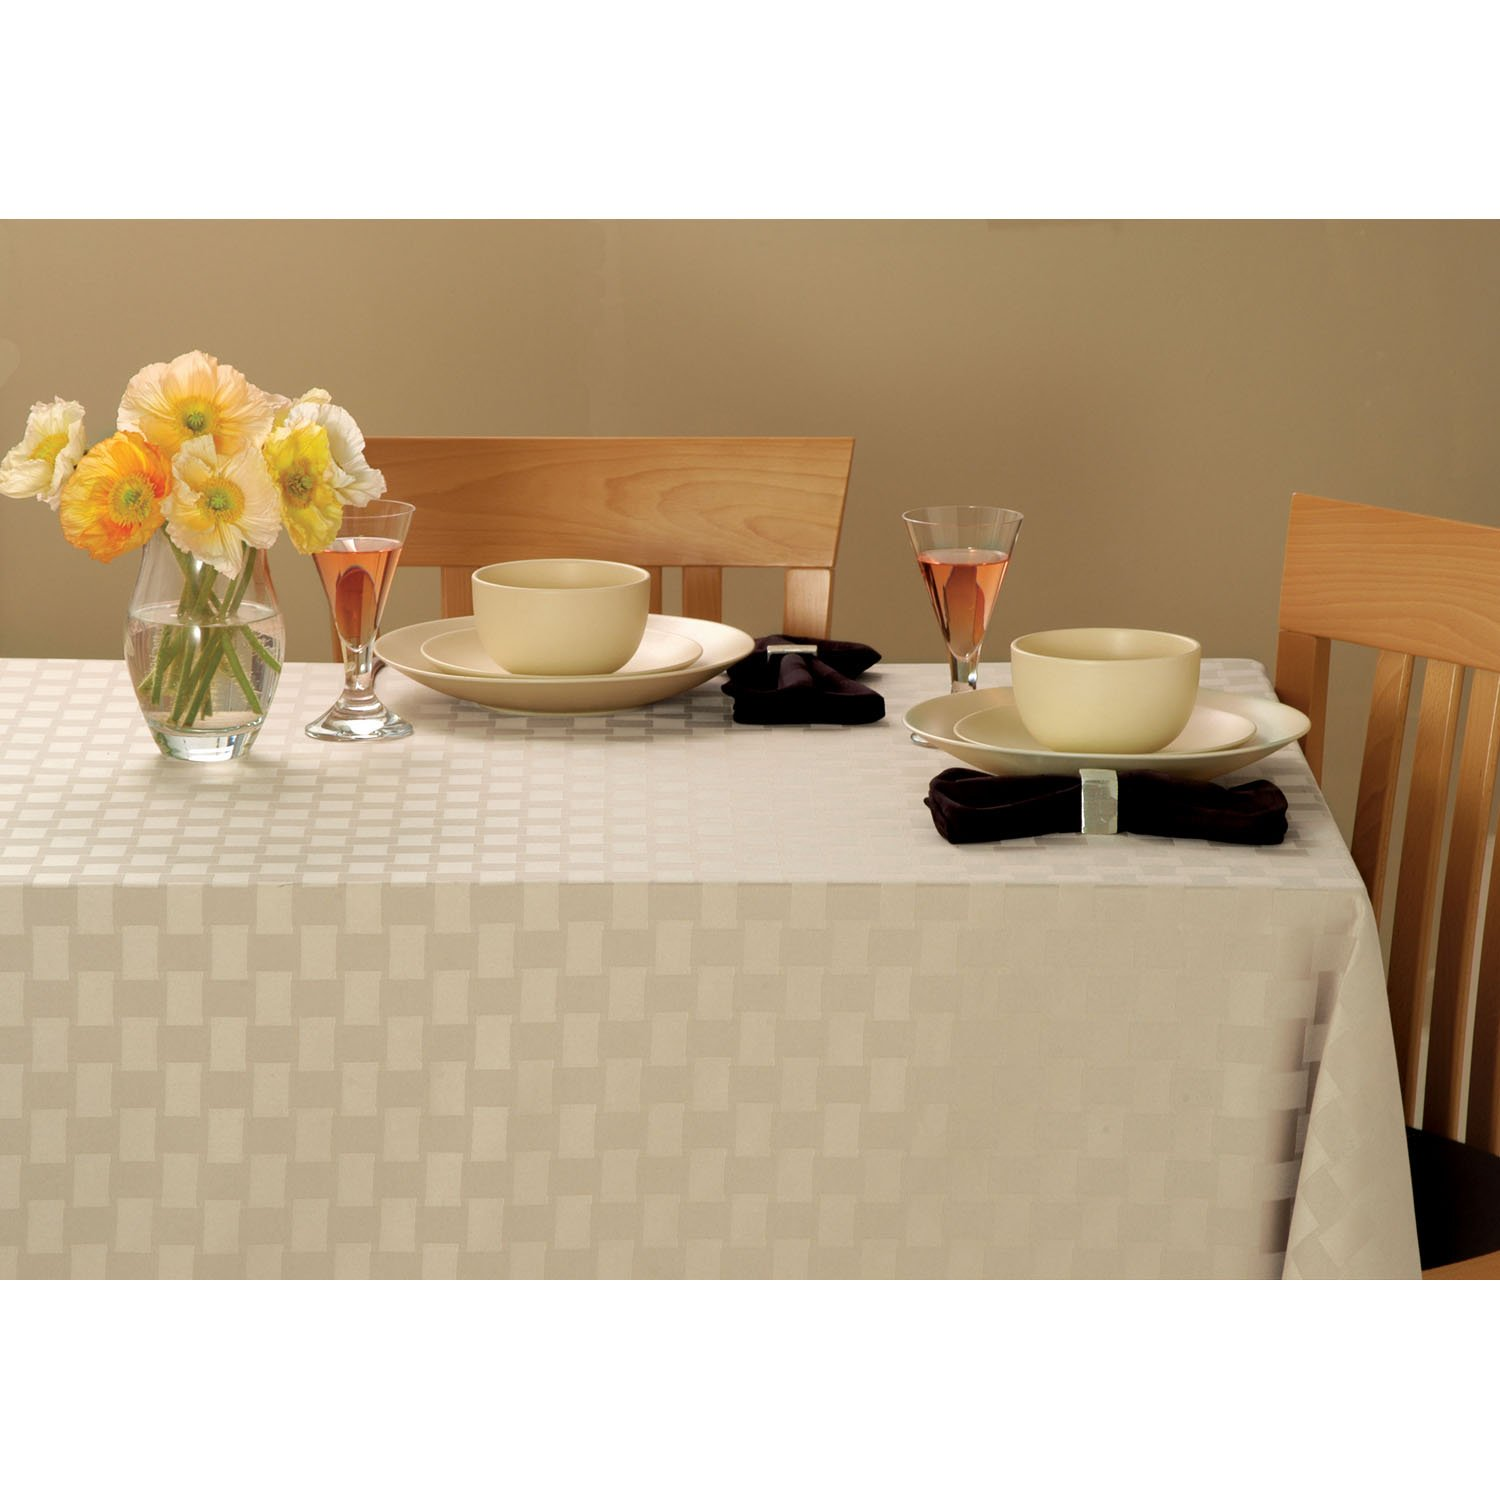 Bardwil Linens Reflections Set of 4 Placemats Black